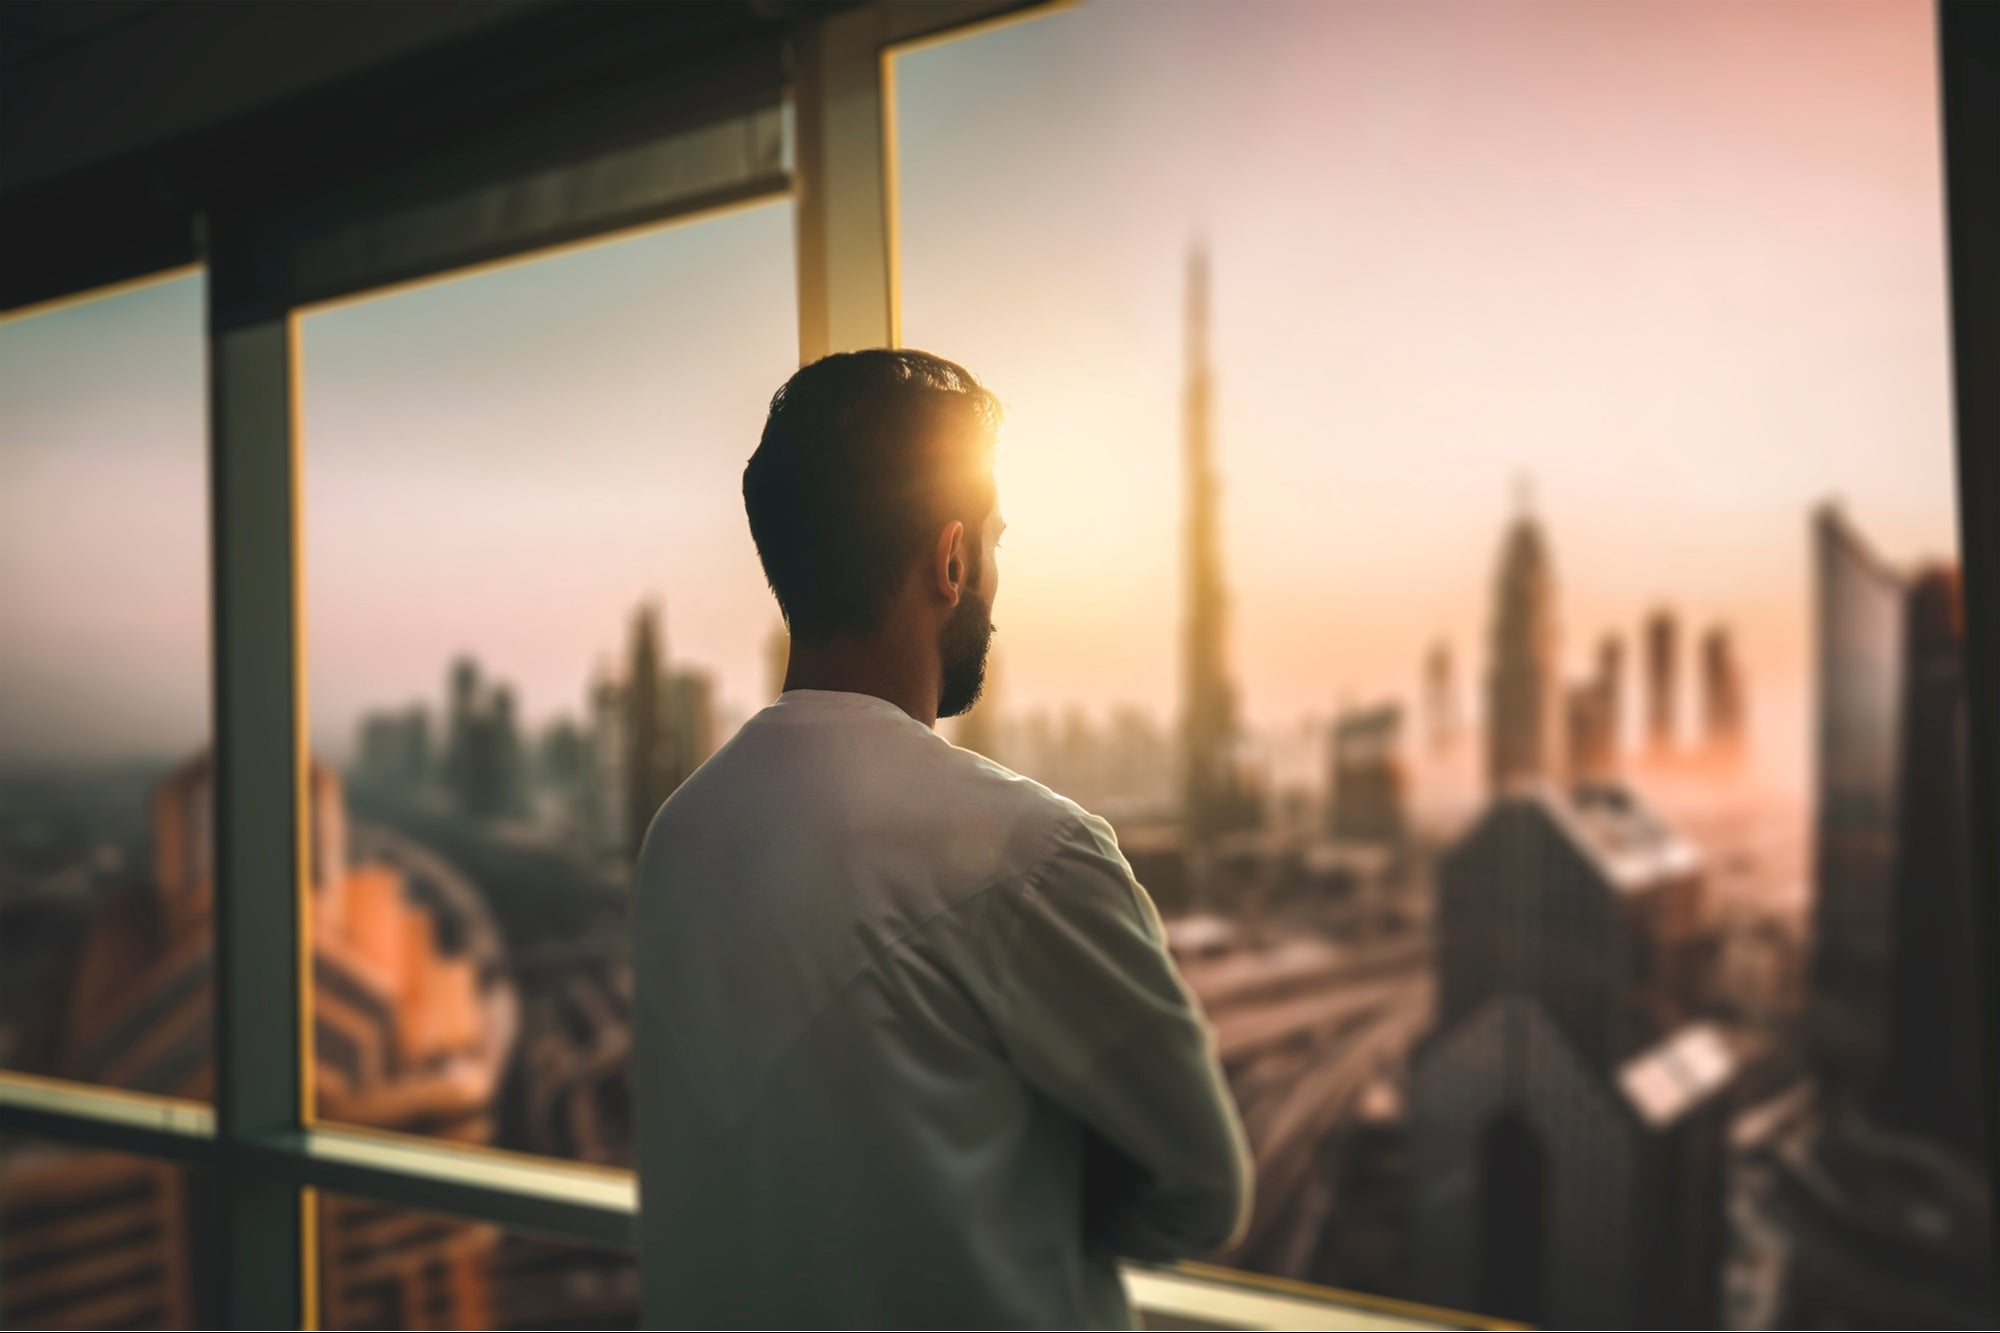 Entrepreneurial Leave: Here's Why The UAE Should Consider Providing This Offering To Emiratis Employed In The Public Sector